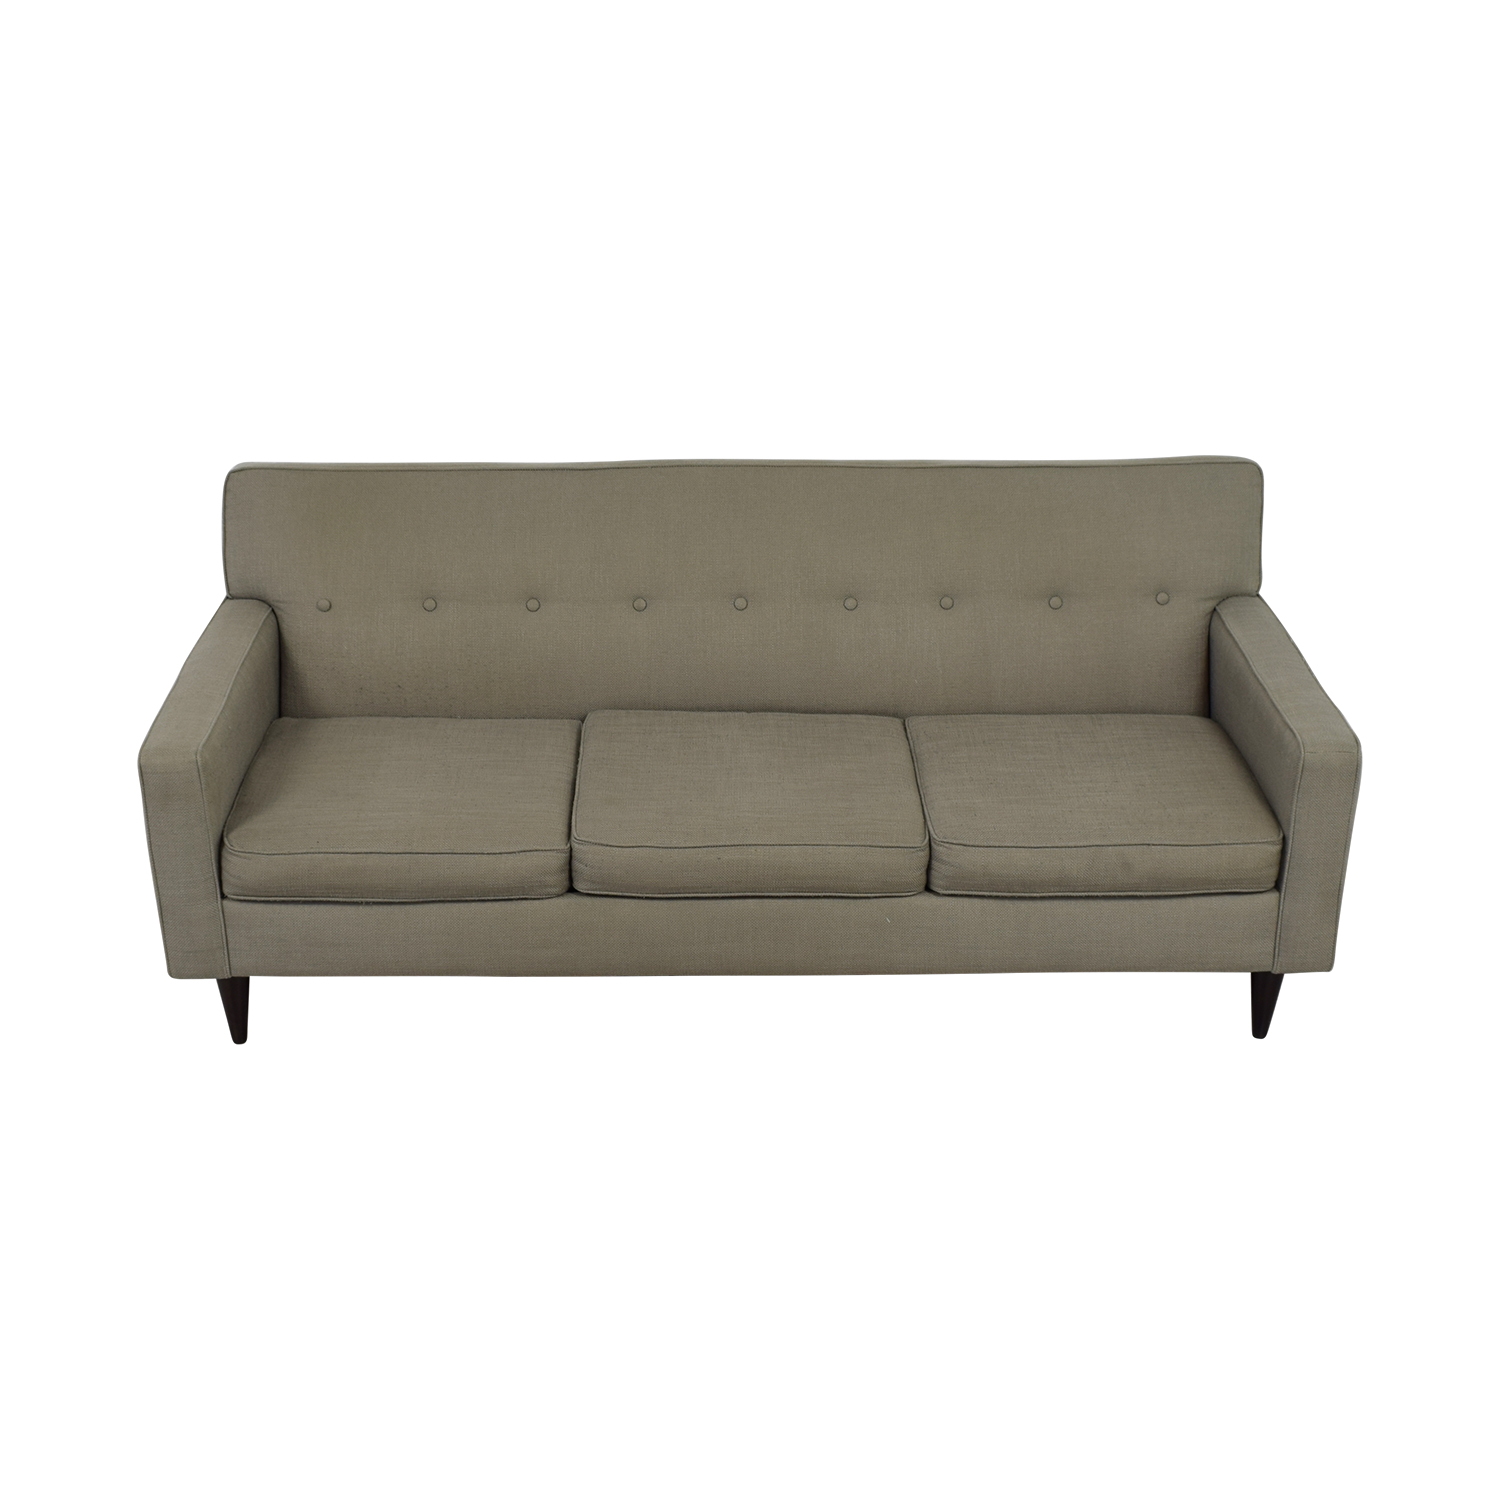 Max Home Furniture Max Home Furniture Three Cushion Granite Tufted Sofa for sale